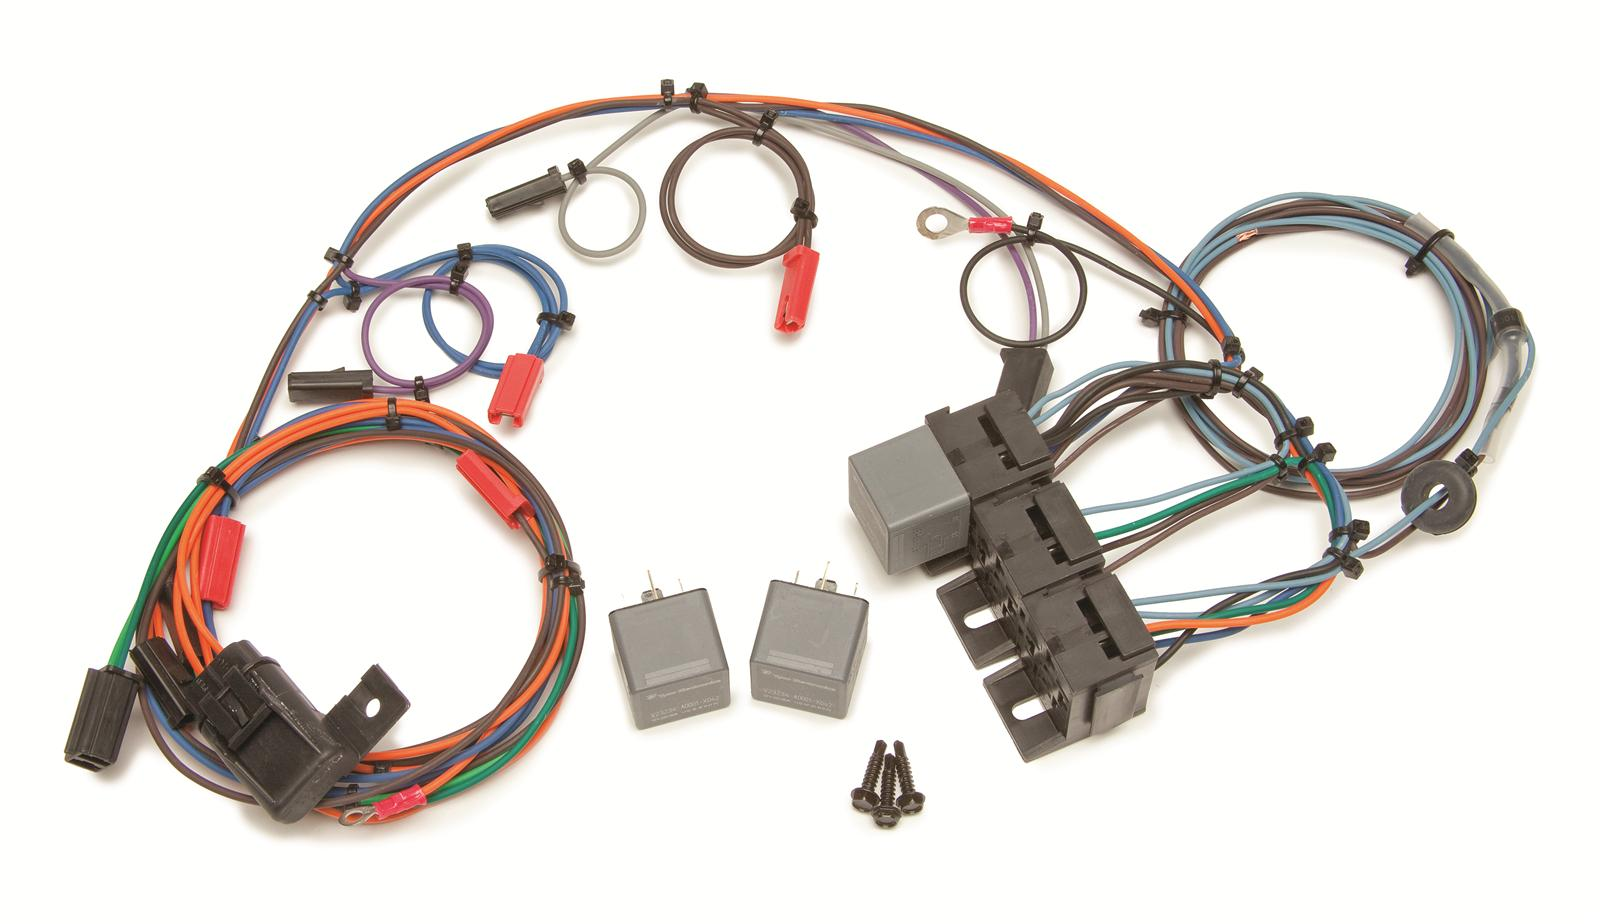 hight resolution of painless wiring 30818 wiring harness headlight door chevy painless wiring harness ls1 painless wiring harness